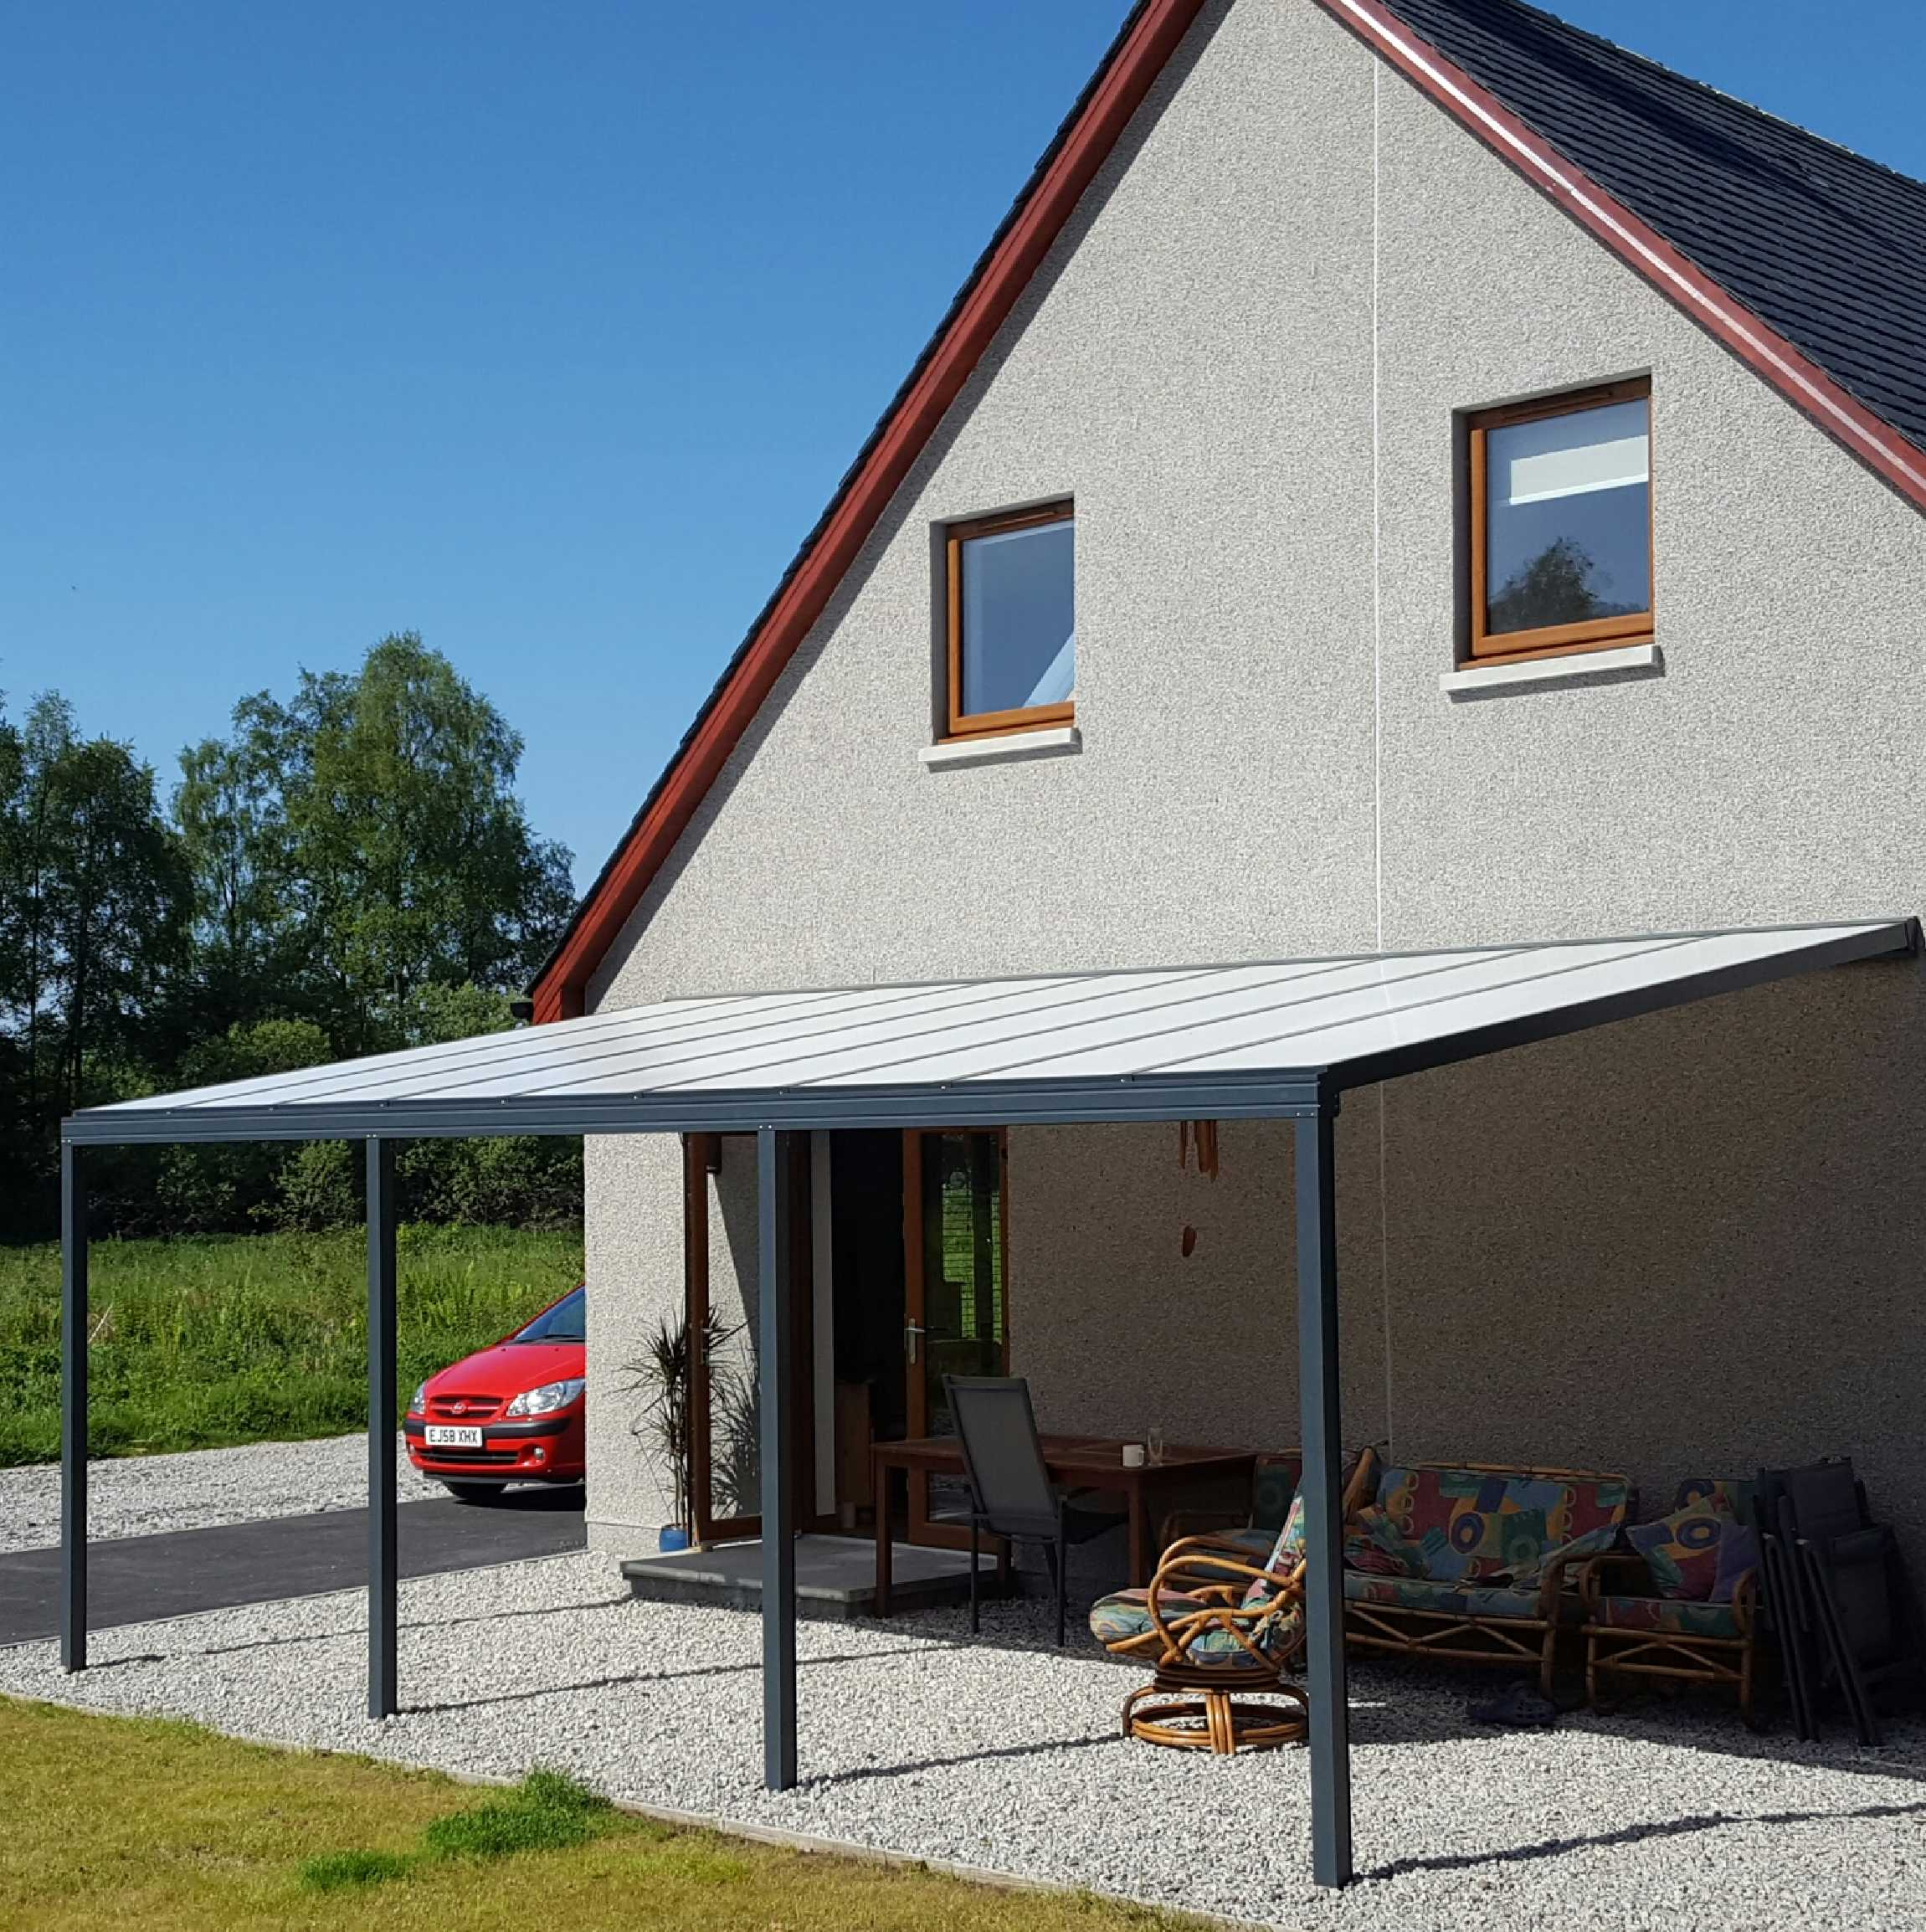 Great selection of Omega Smart Lean-To Canopy, Anthracite Grey, 16mm Polycarbonate Glazing - 12.0m (W) x 2.5m (P), (5) Supporting Posts